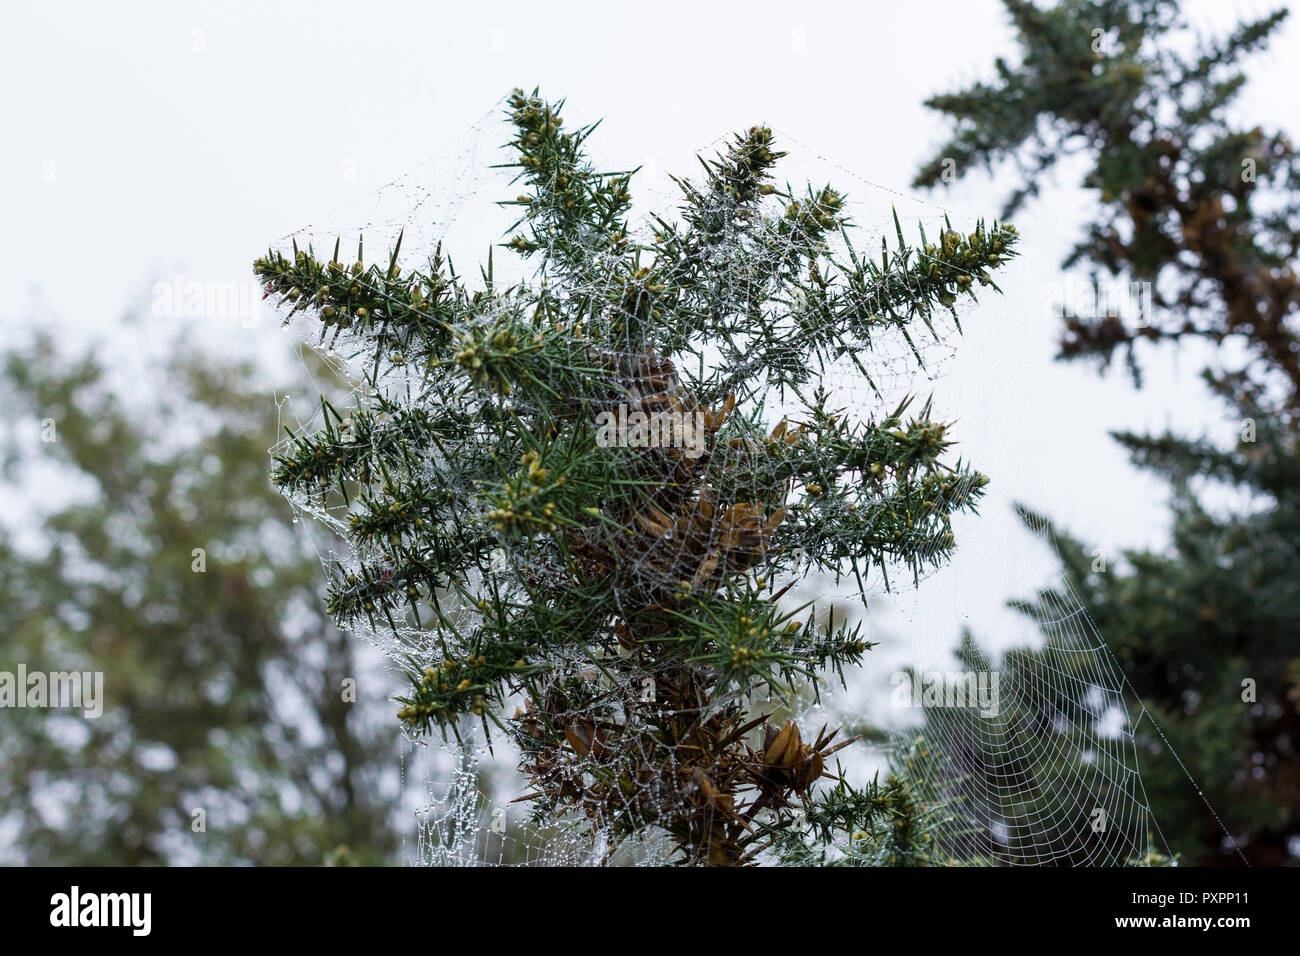 Gorse in the shape of a star with spider webs, Dorset, UK - Stock Image